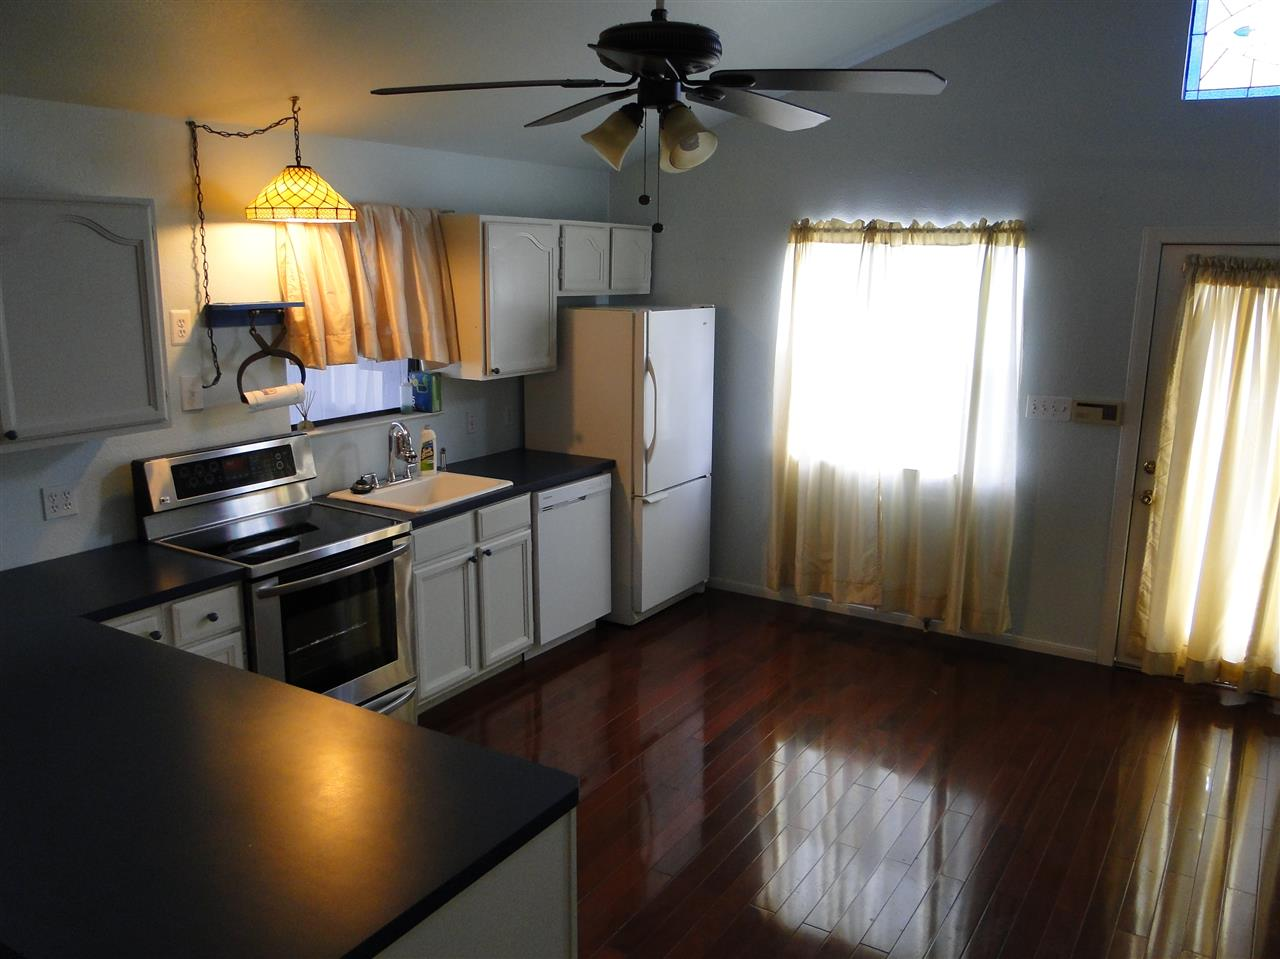 Additional photo for property listing at 104 Contour Drive  Tow, Texas 78672 United States